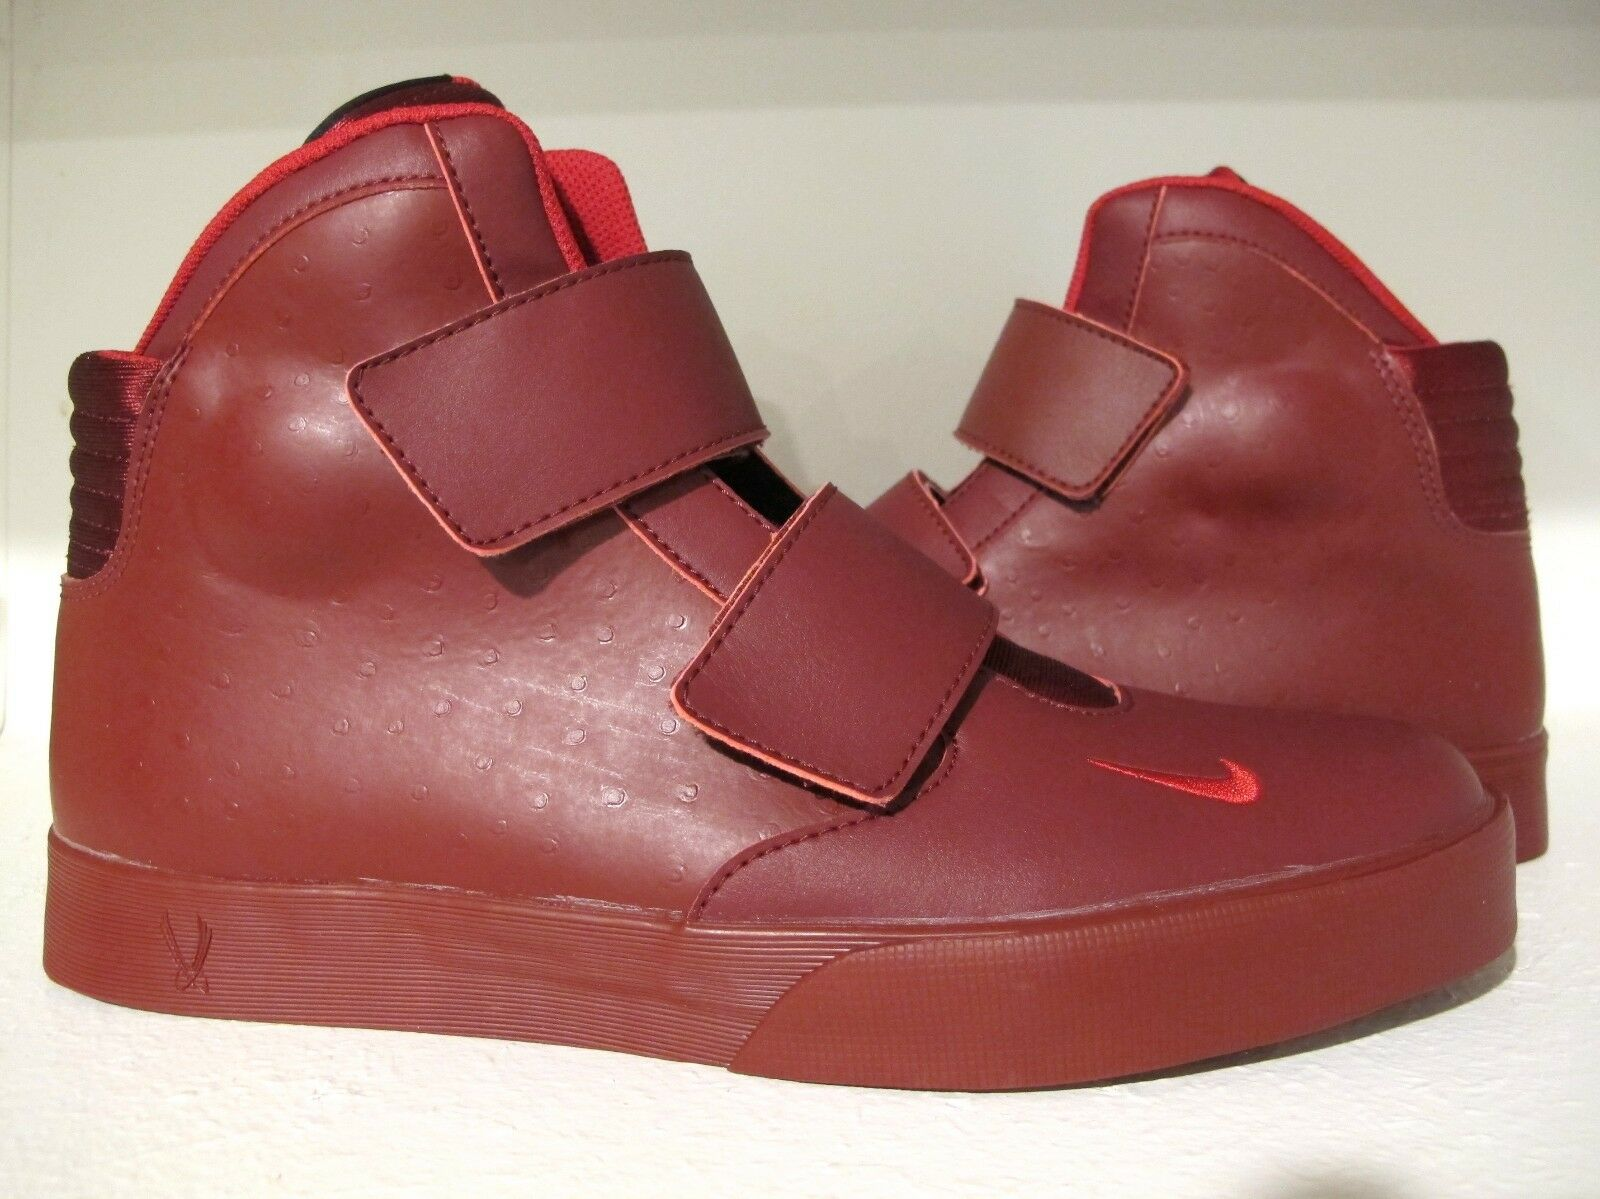 competitive price 5403a 47d9d Nike Flystepper 2k3 2k3 2k3 644576-667 Midnight Team Gym Red NEW Size 10  11.5